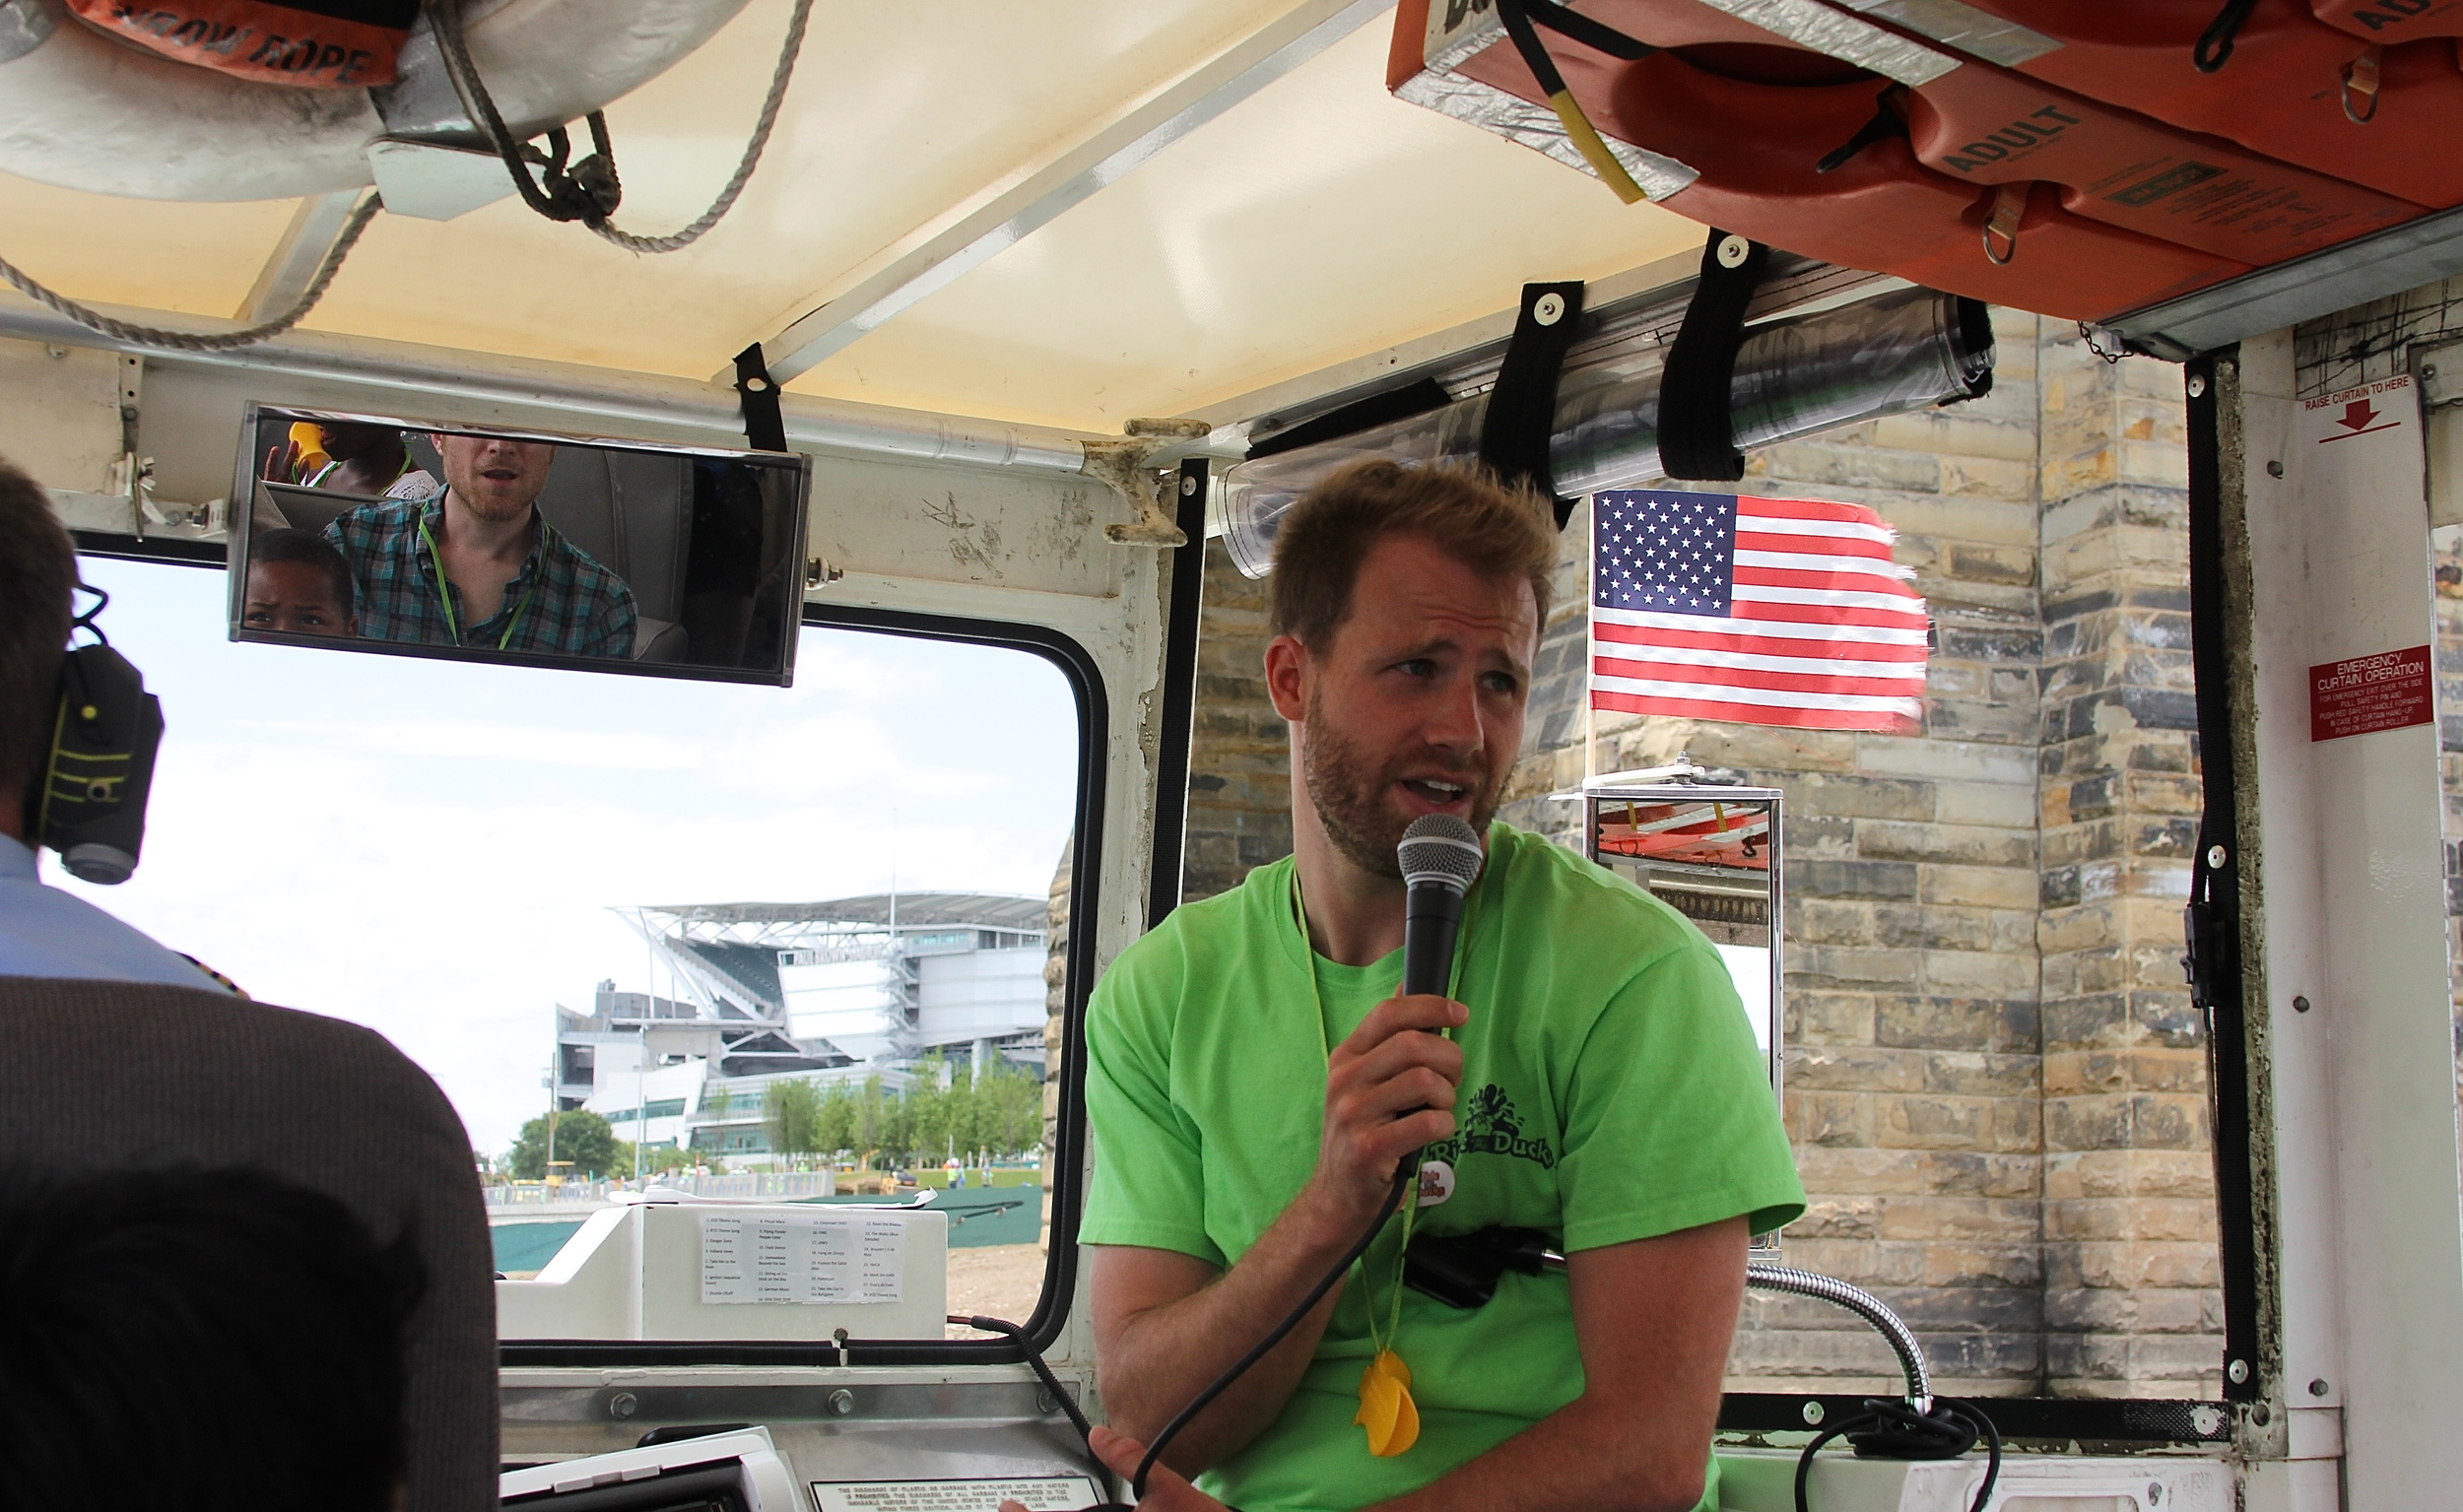 Our amazing host and duck boat guide, Zak Slemmer